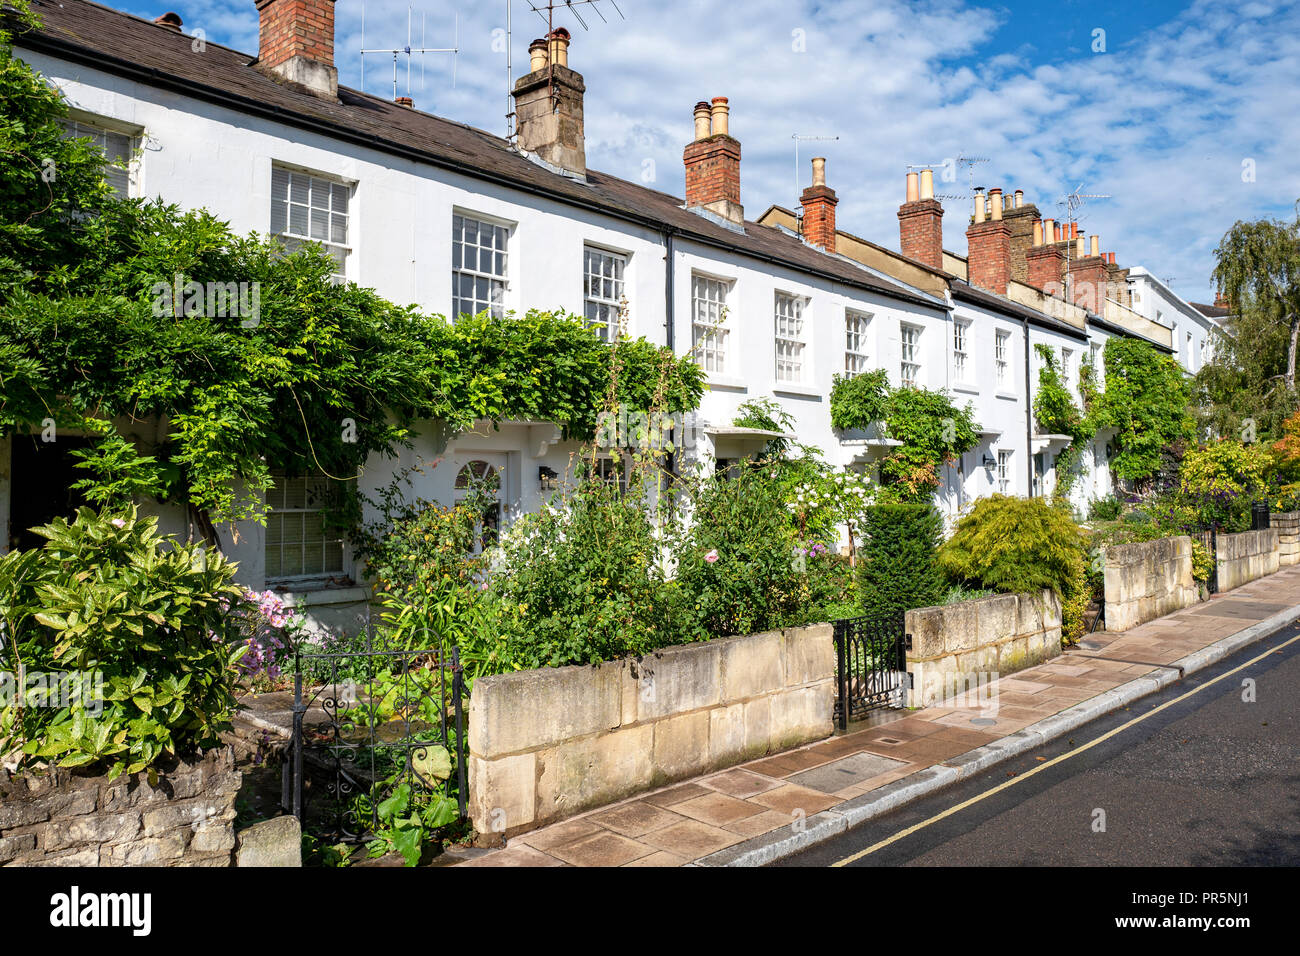 Typical English row of terraced cottages in Richmond London - Stock Image